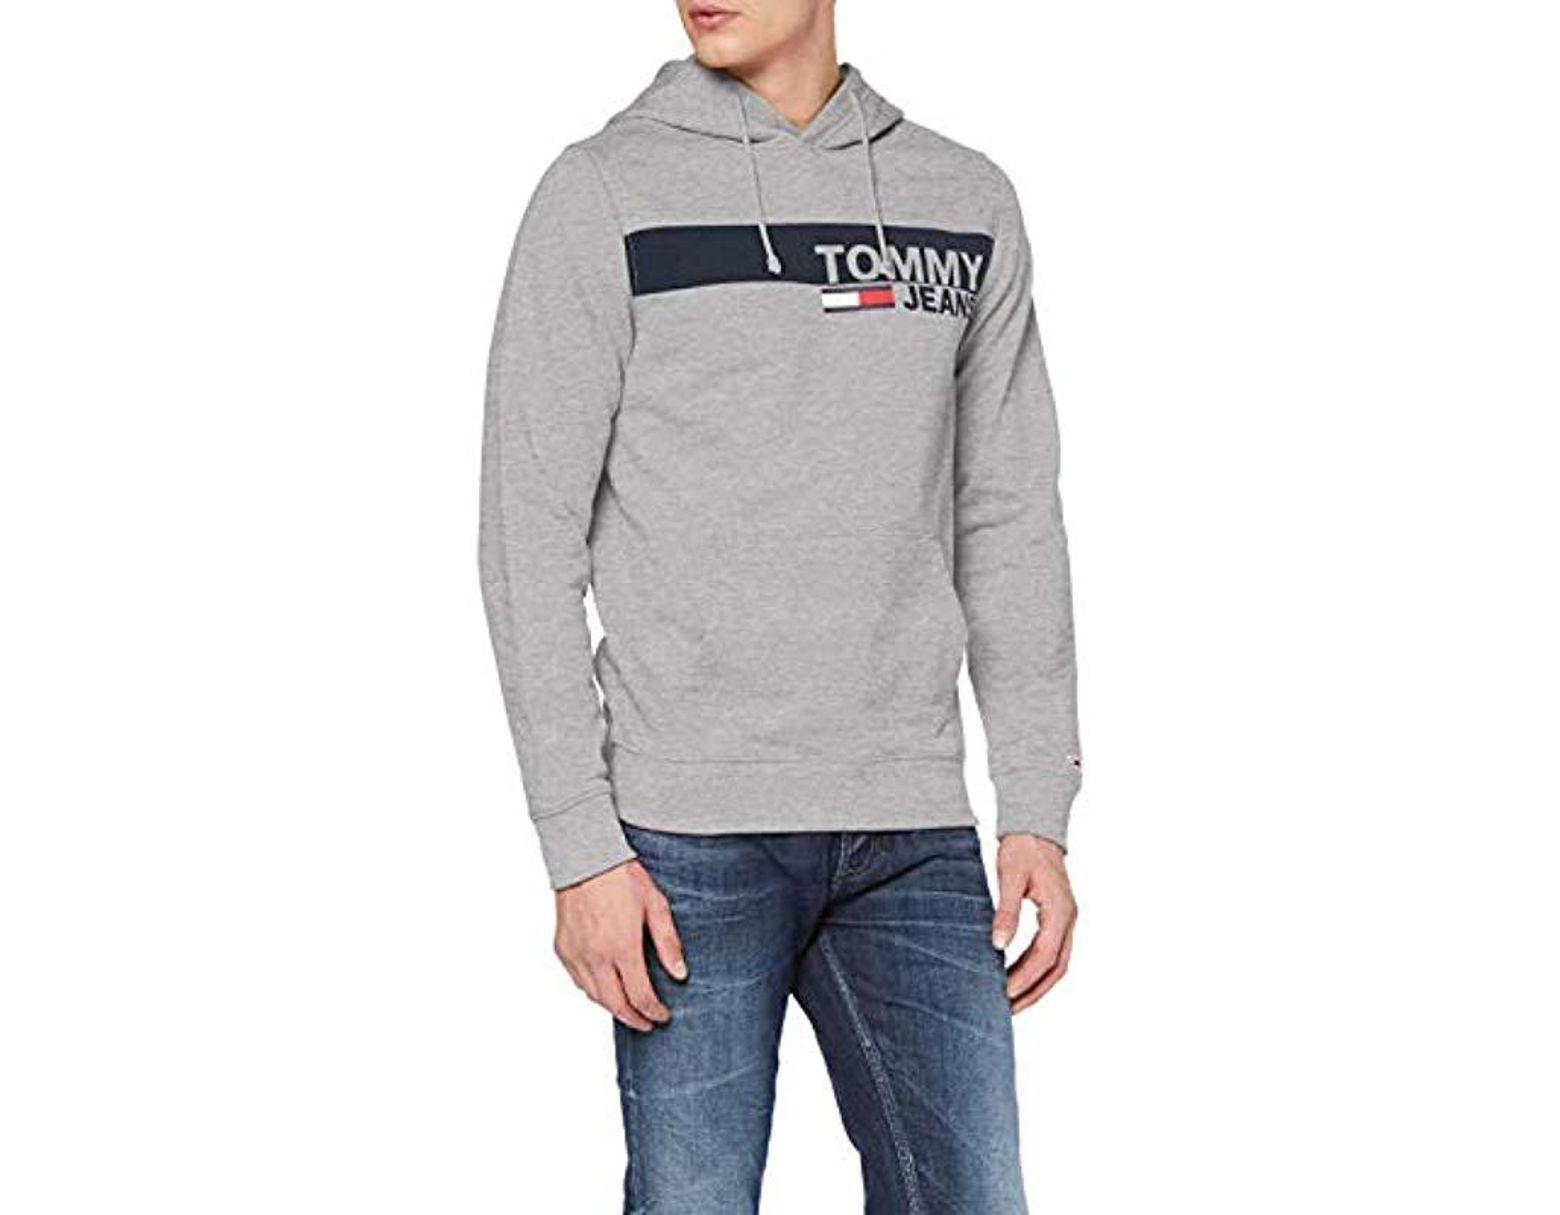 42c713b1 Tommy Hilfiger Essential Graphic Hoodie Sweatshirt in Gray for Men - Lyst